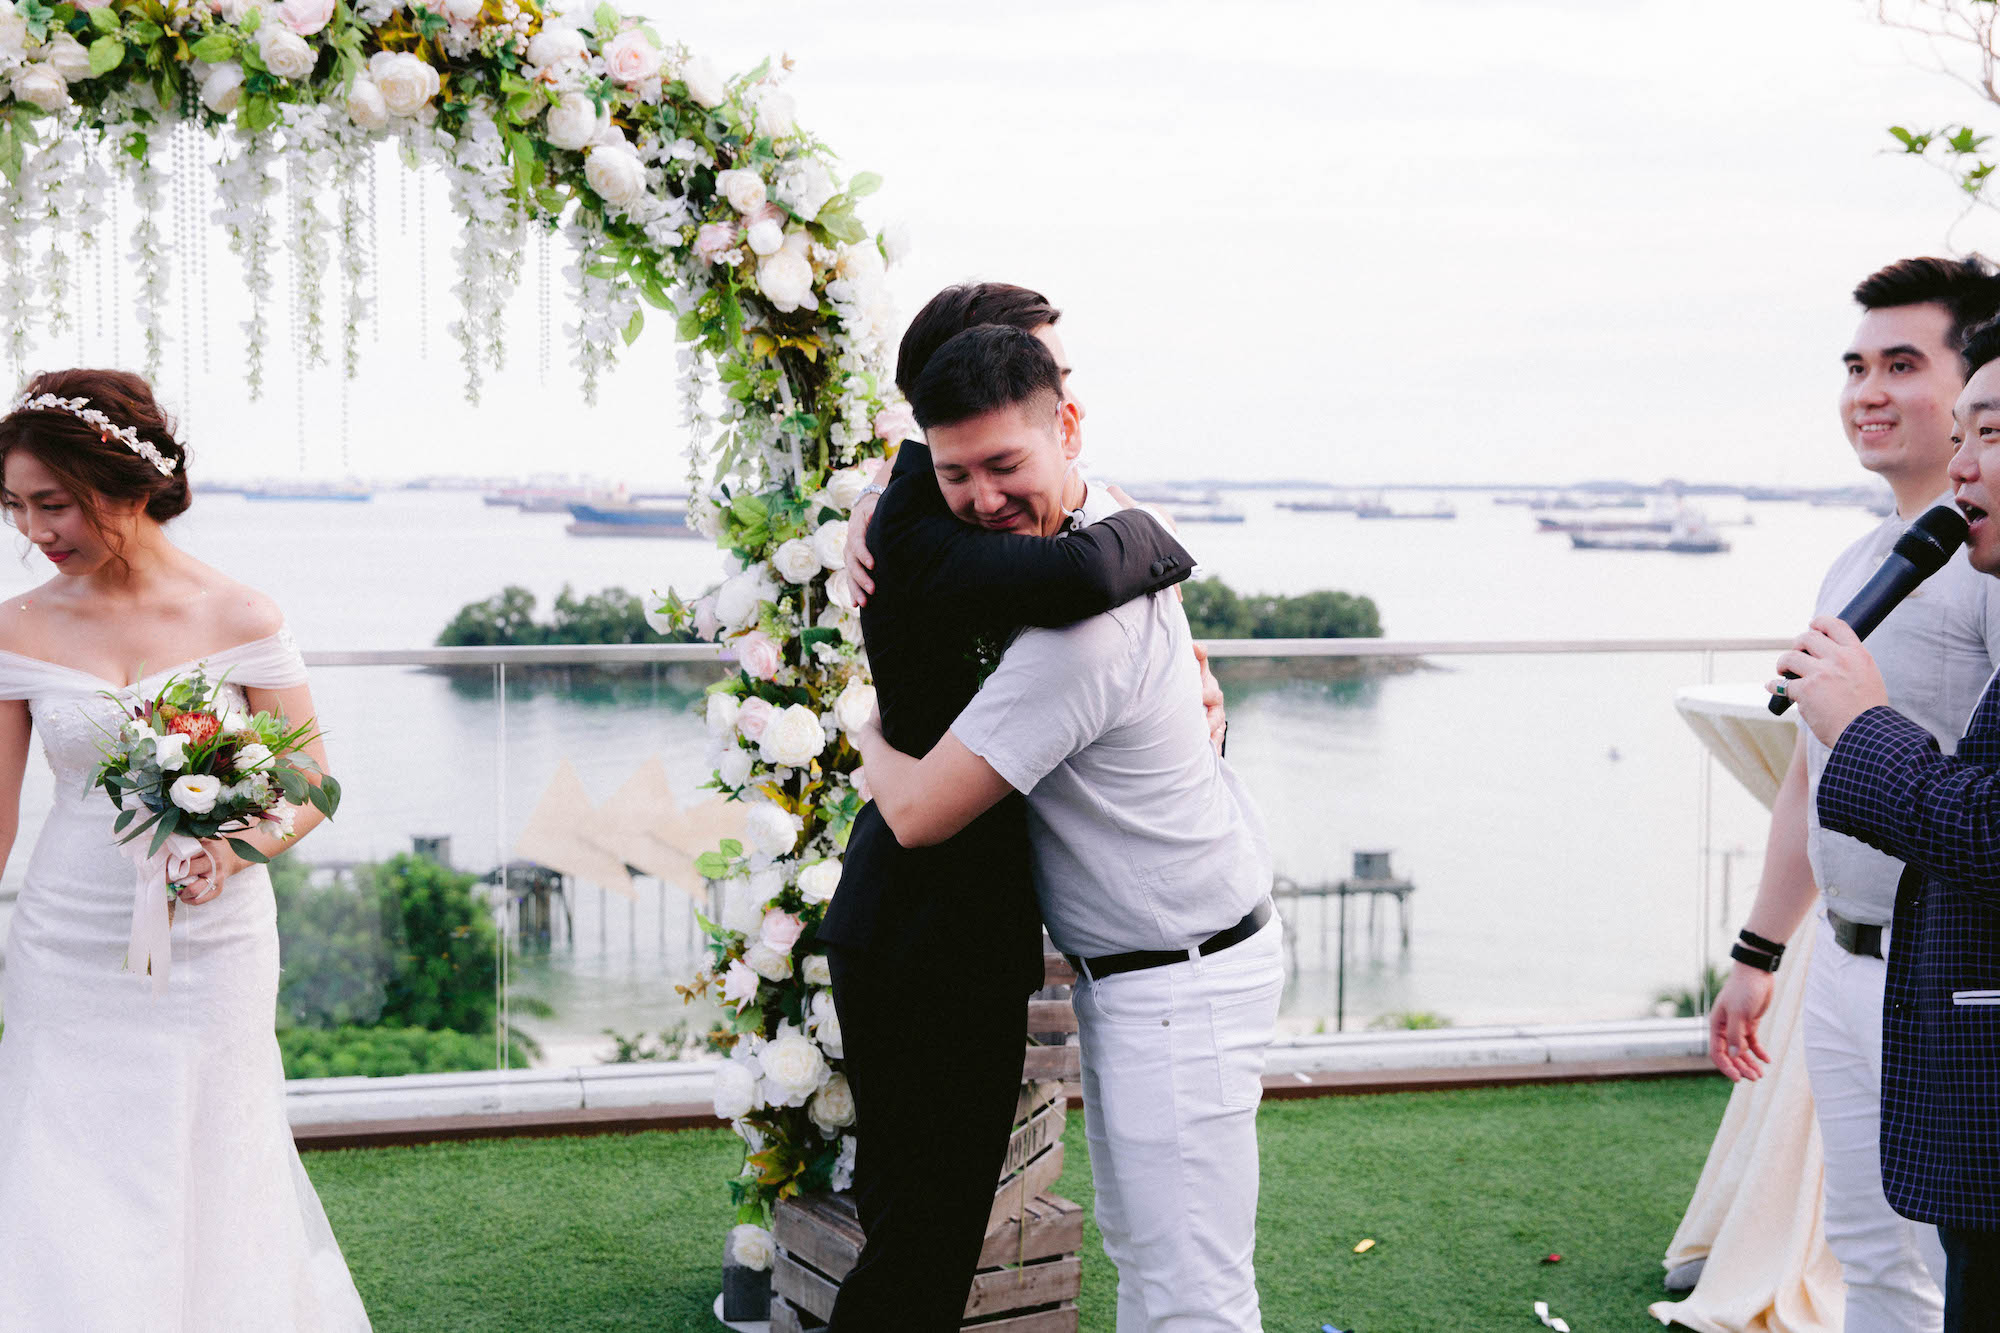 Freida & Winson - Singapore Wedding Photography  58.jpg